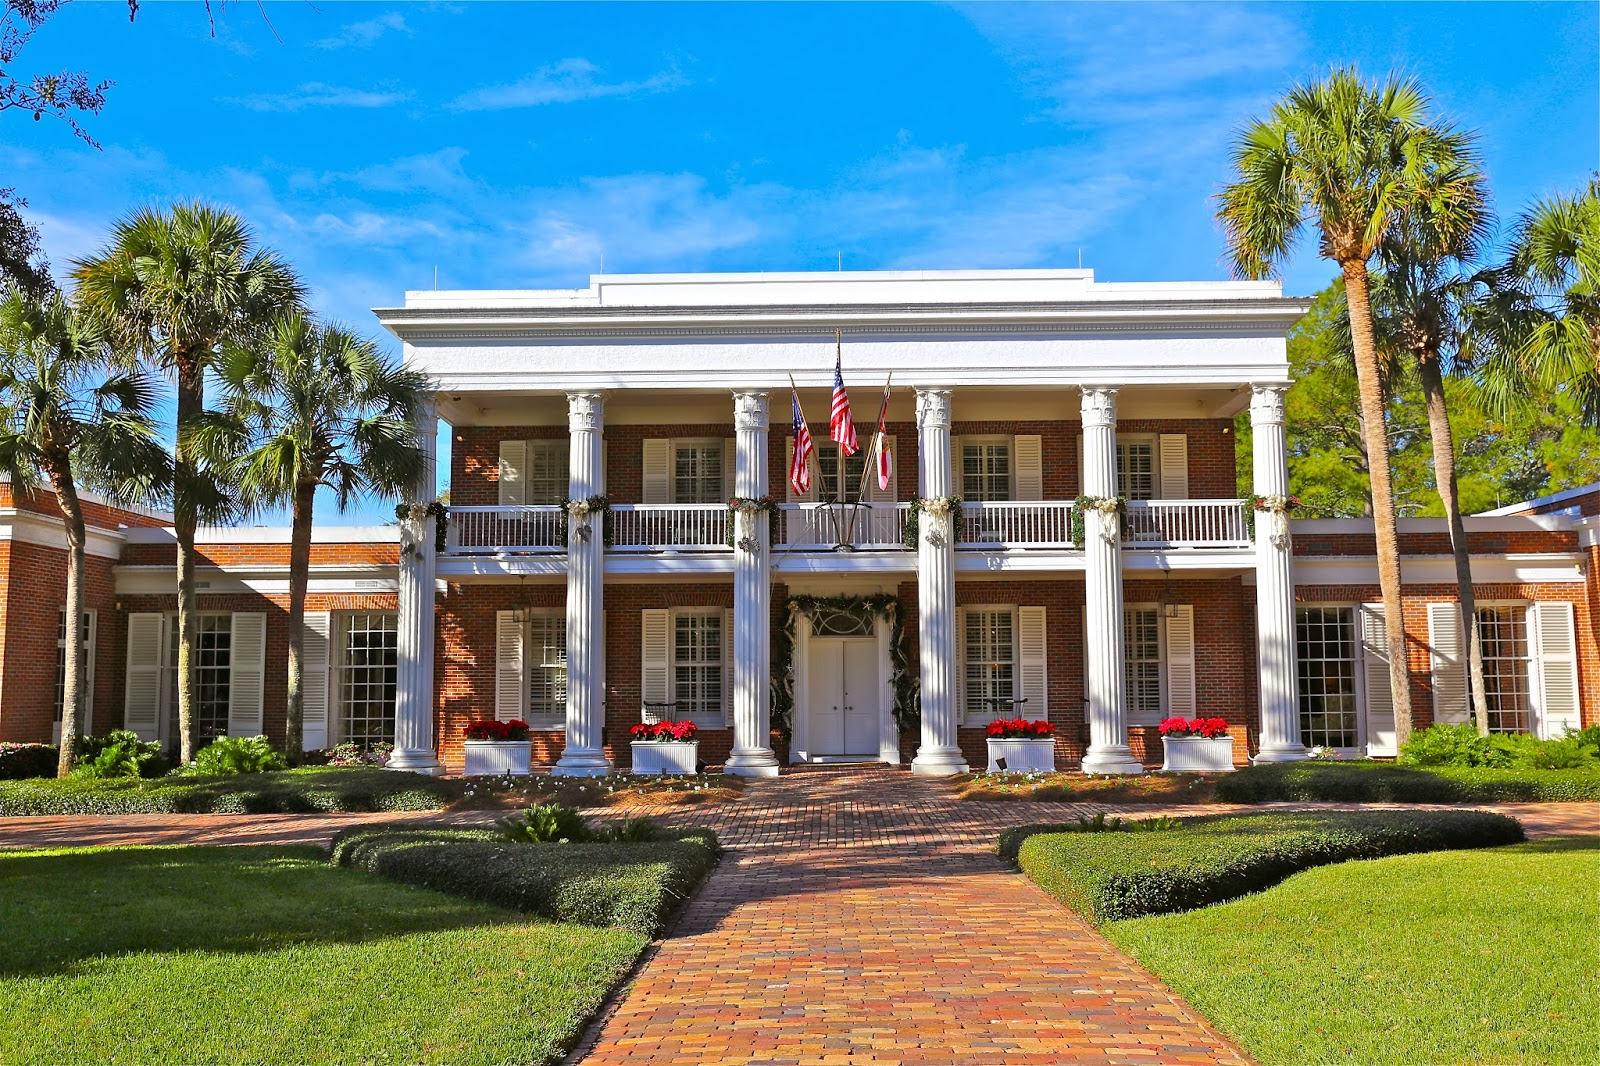 Sweet Southern Days: Tour Of The Florida Governor's Mansion